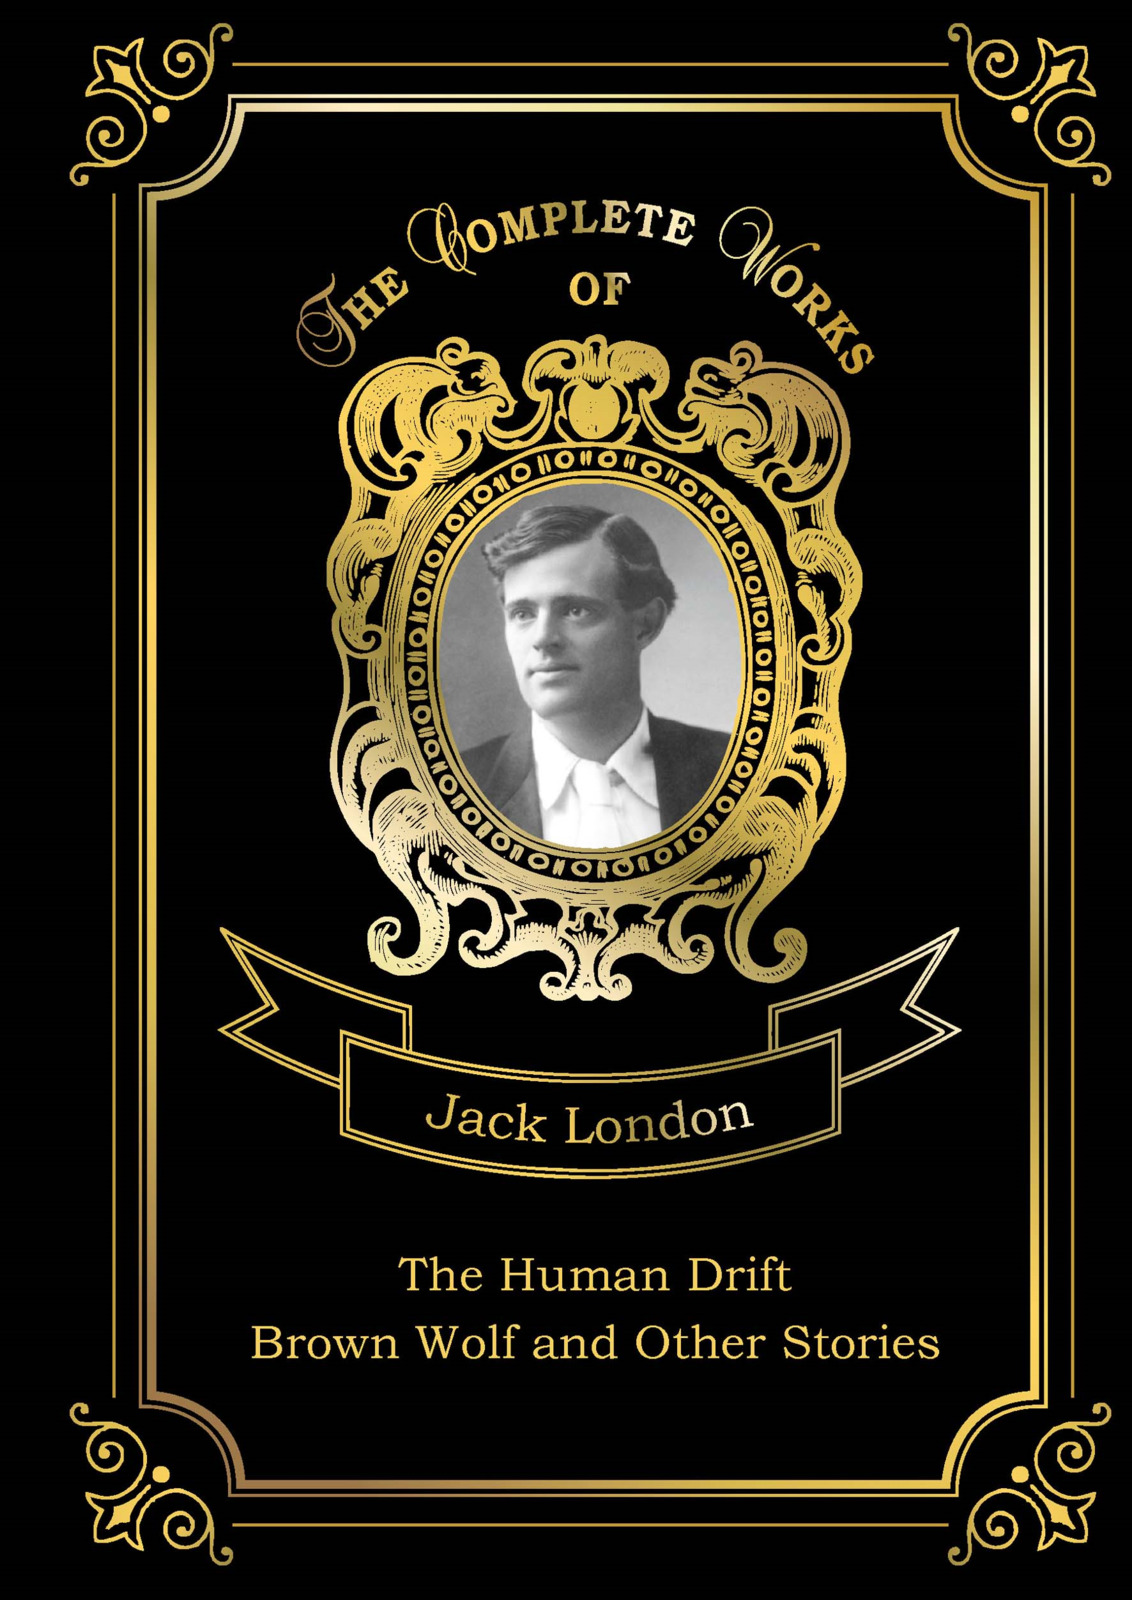 Jack London The Human Drift: Brown Wolf and Other Stories ethan frome and other short fiction